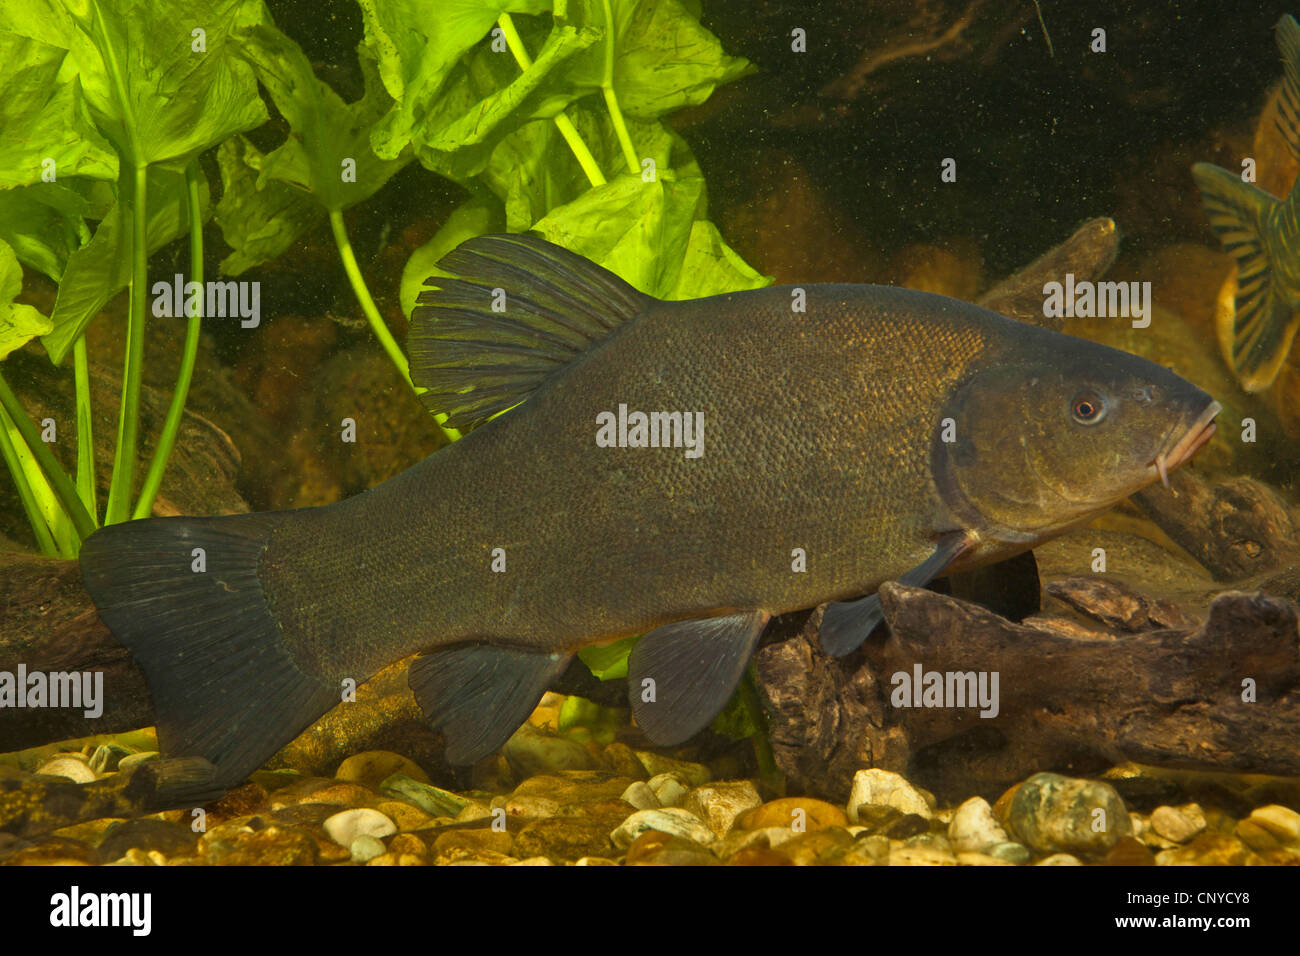 tench (Tinca tinca), spawner at the pebble ground of a water - Stock Image